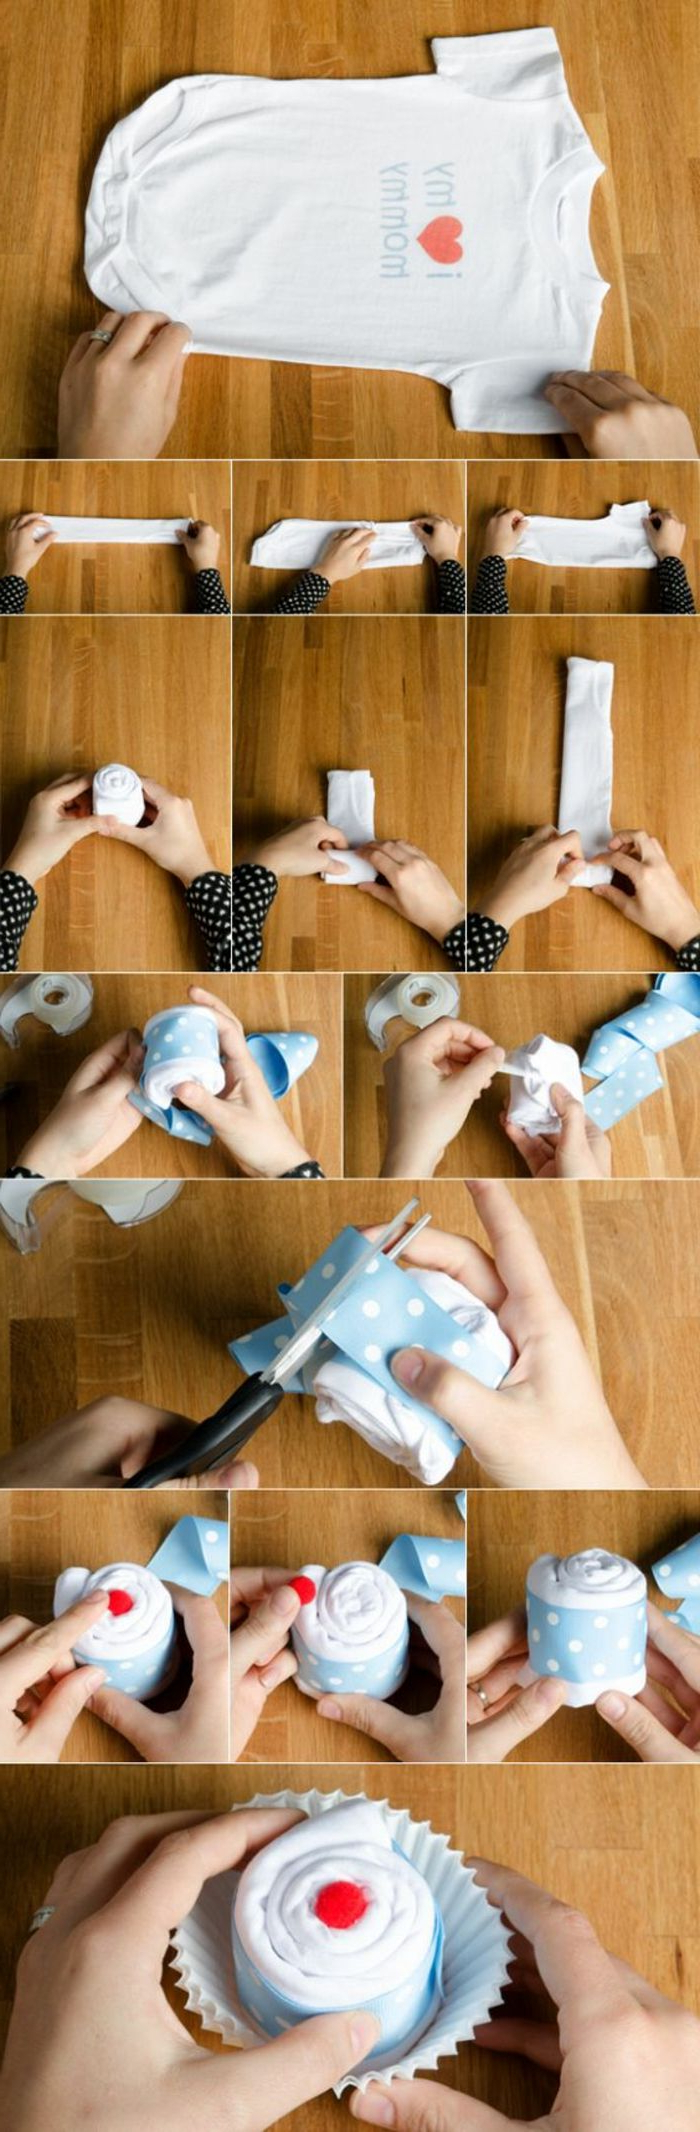 1001+idées Créatives Pour Organiser Une Baby Shower (Gallery 19 of 20)